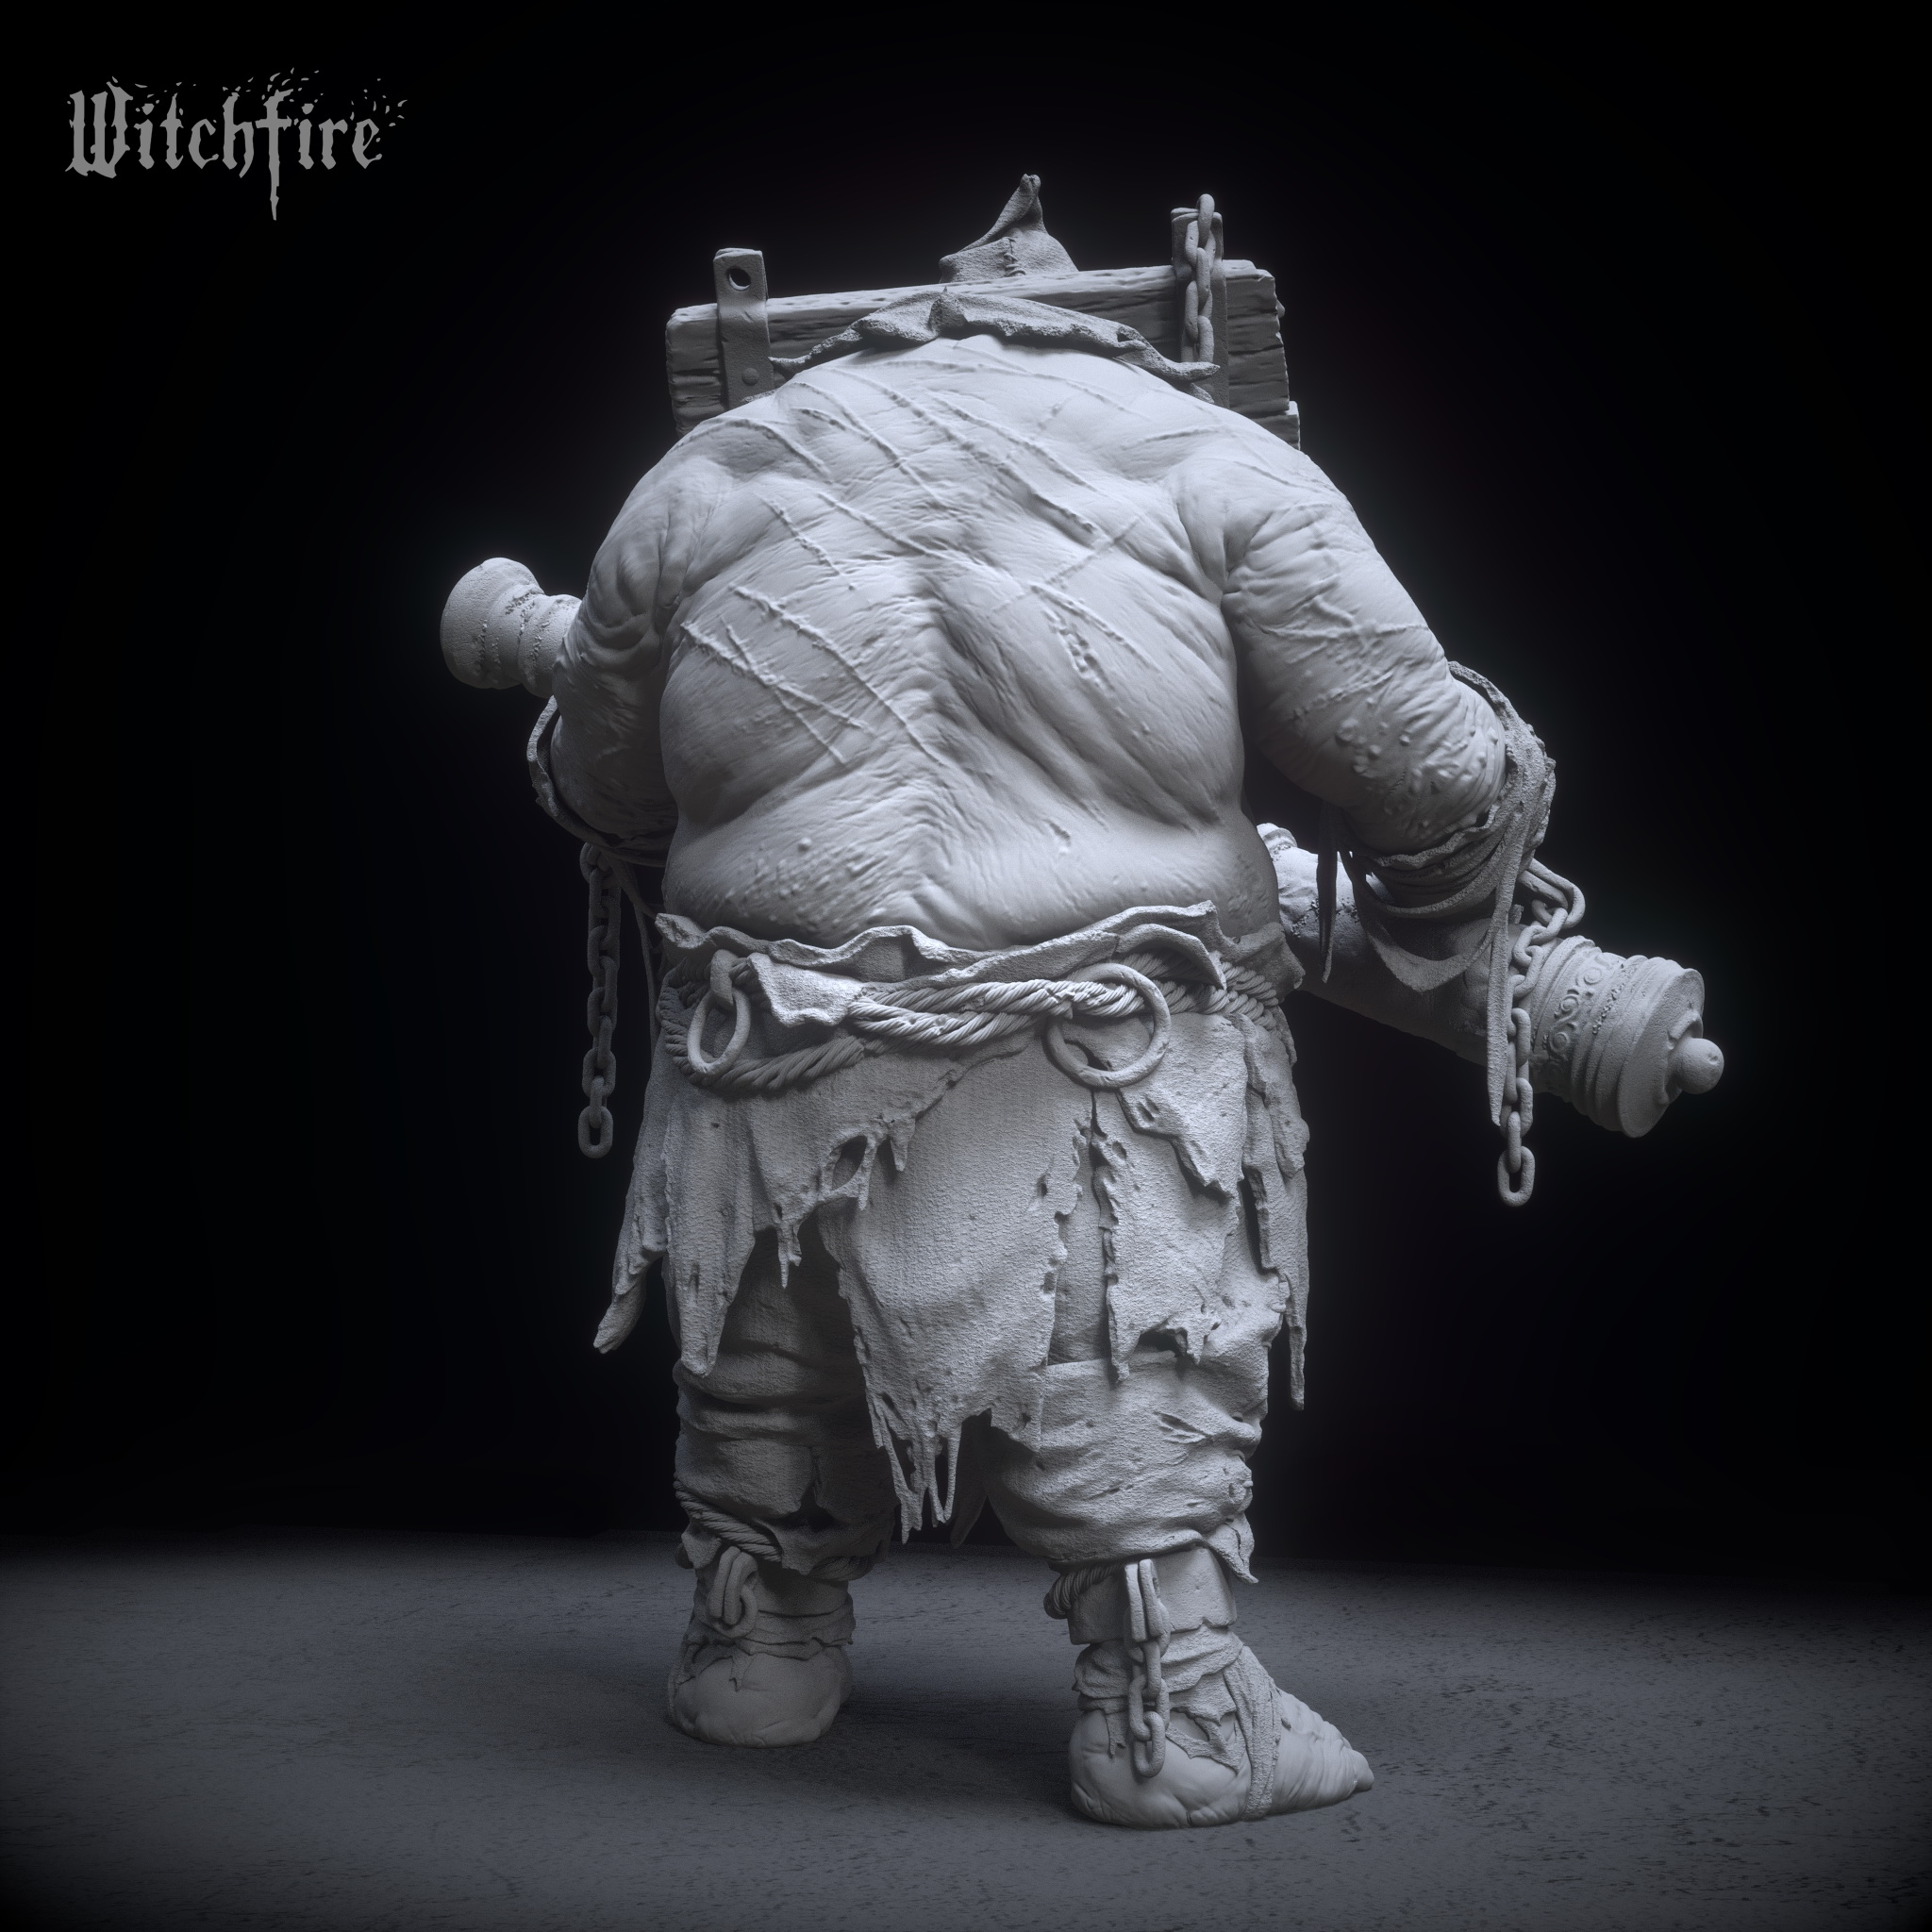 witchfire_ogr_render_22_clay.jpg